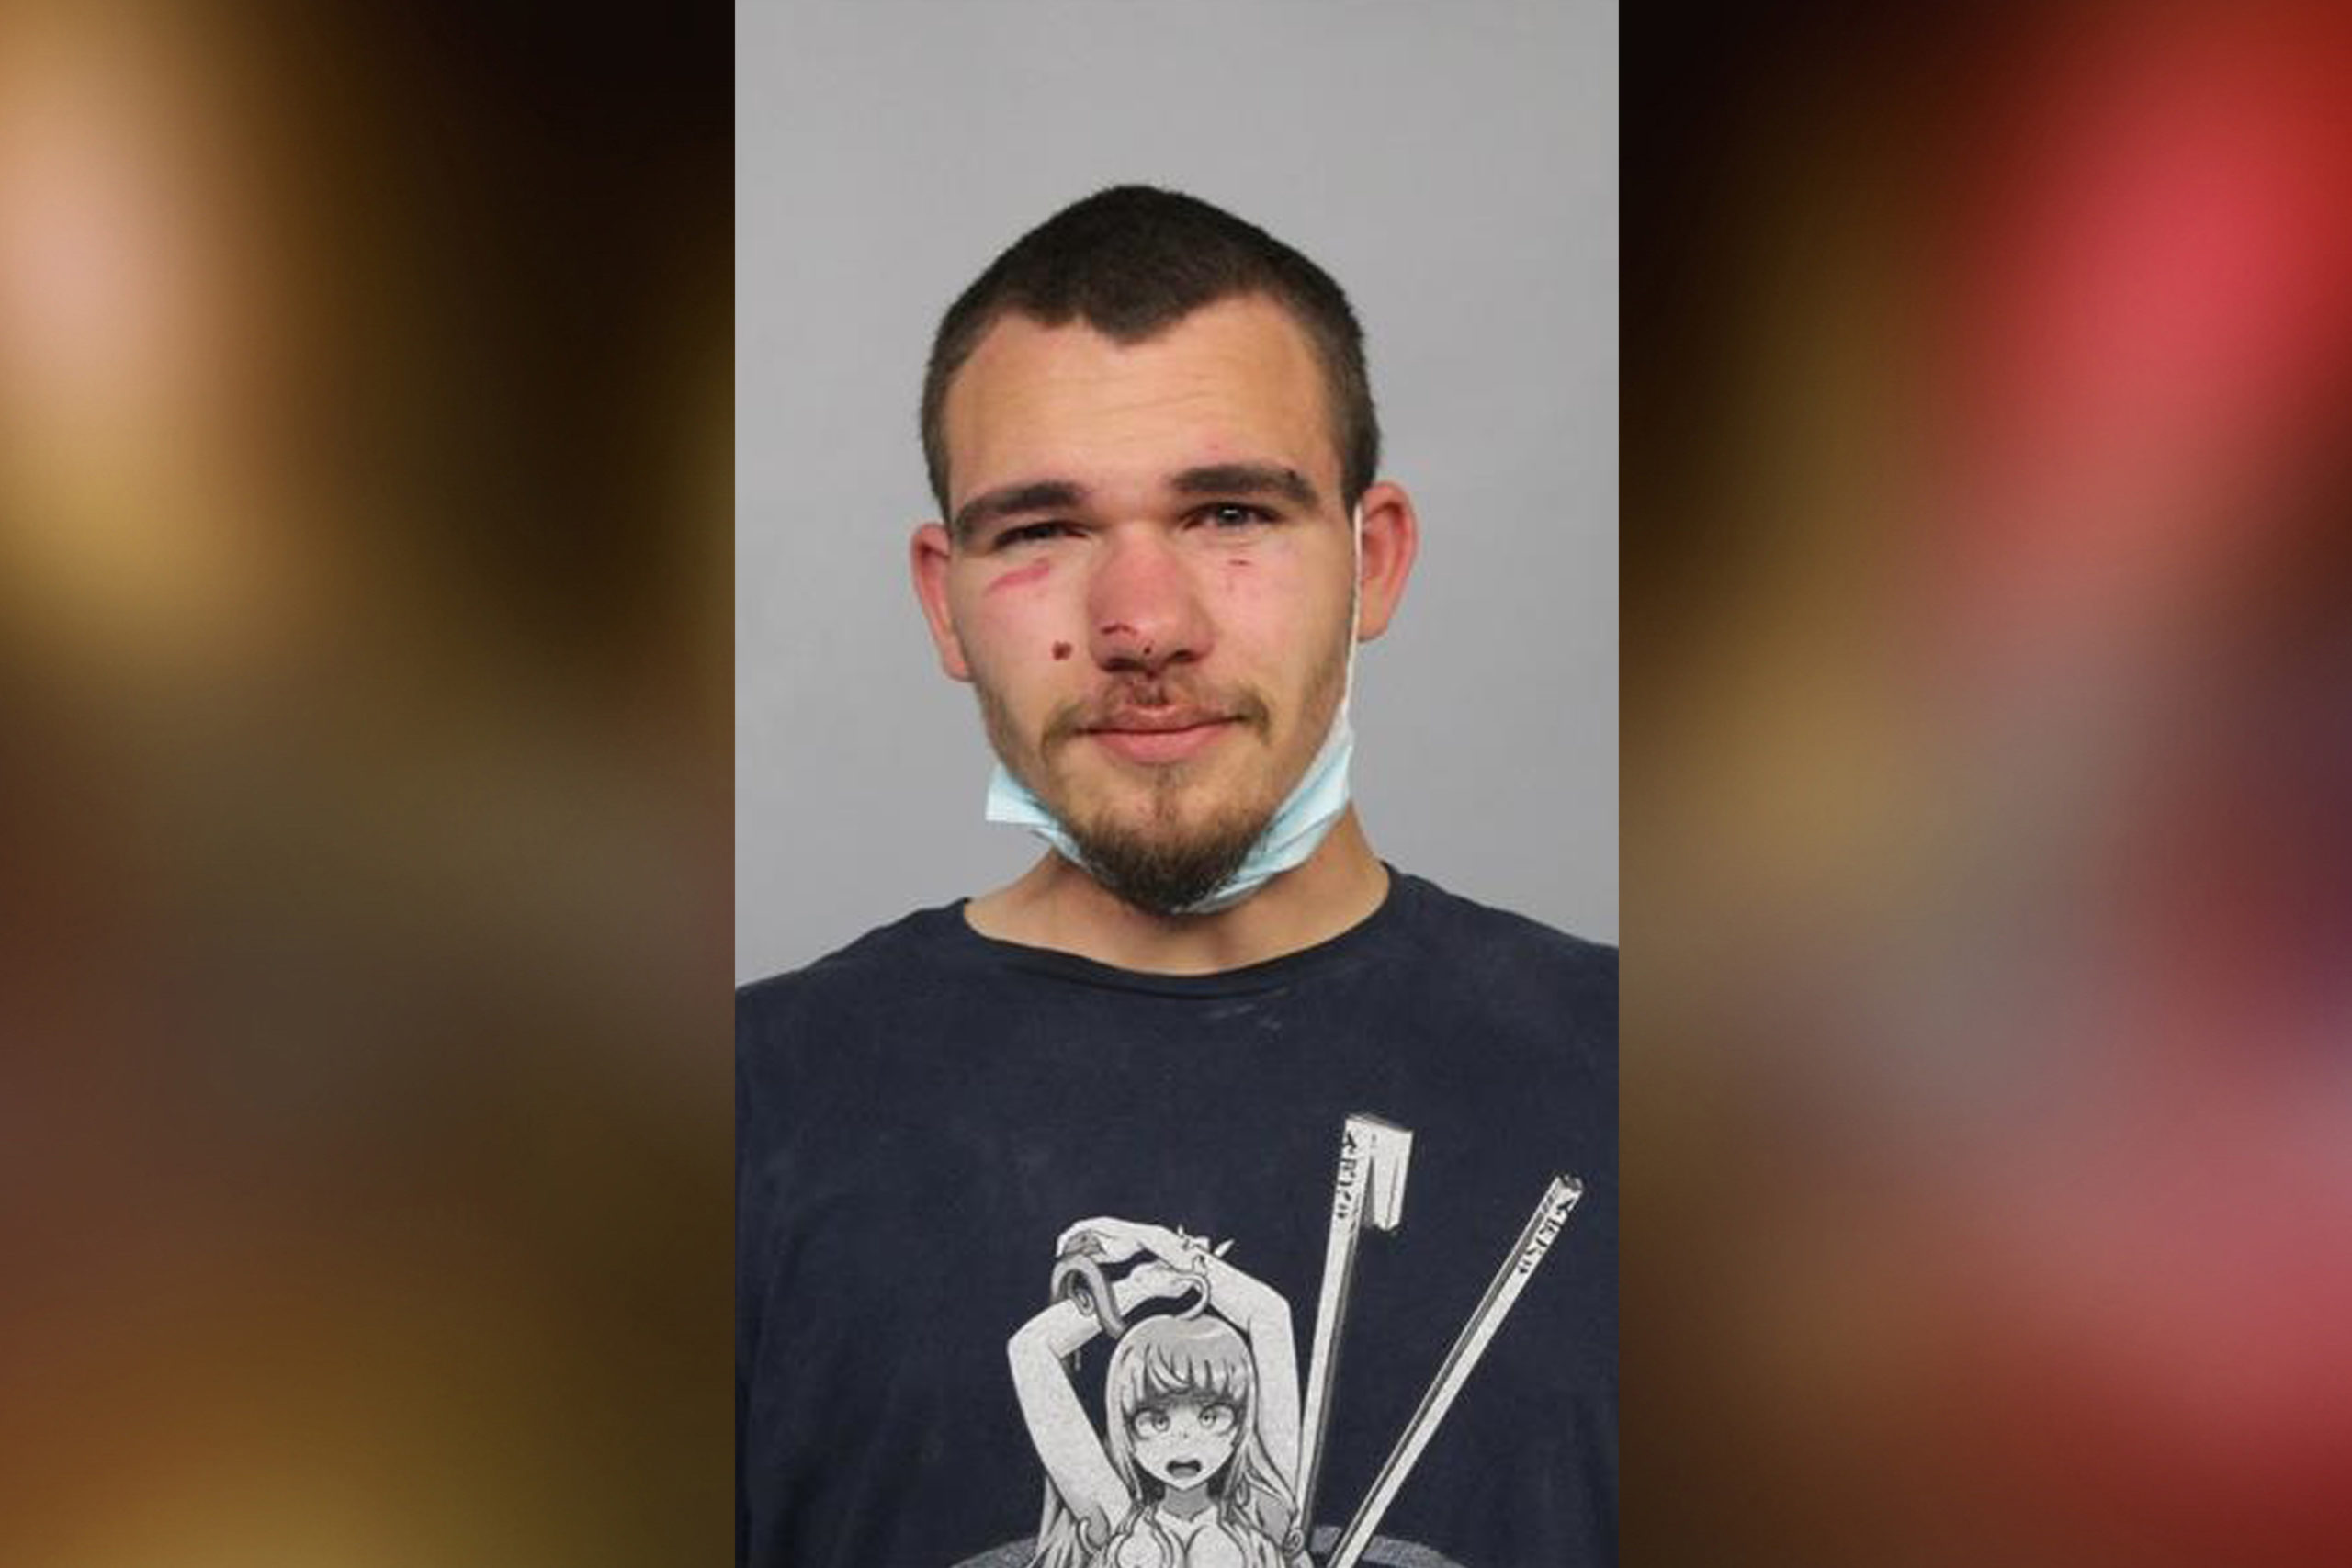 Camden man allegedly exposed, fondled himself in front of